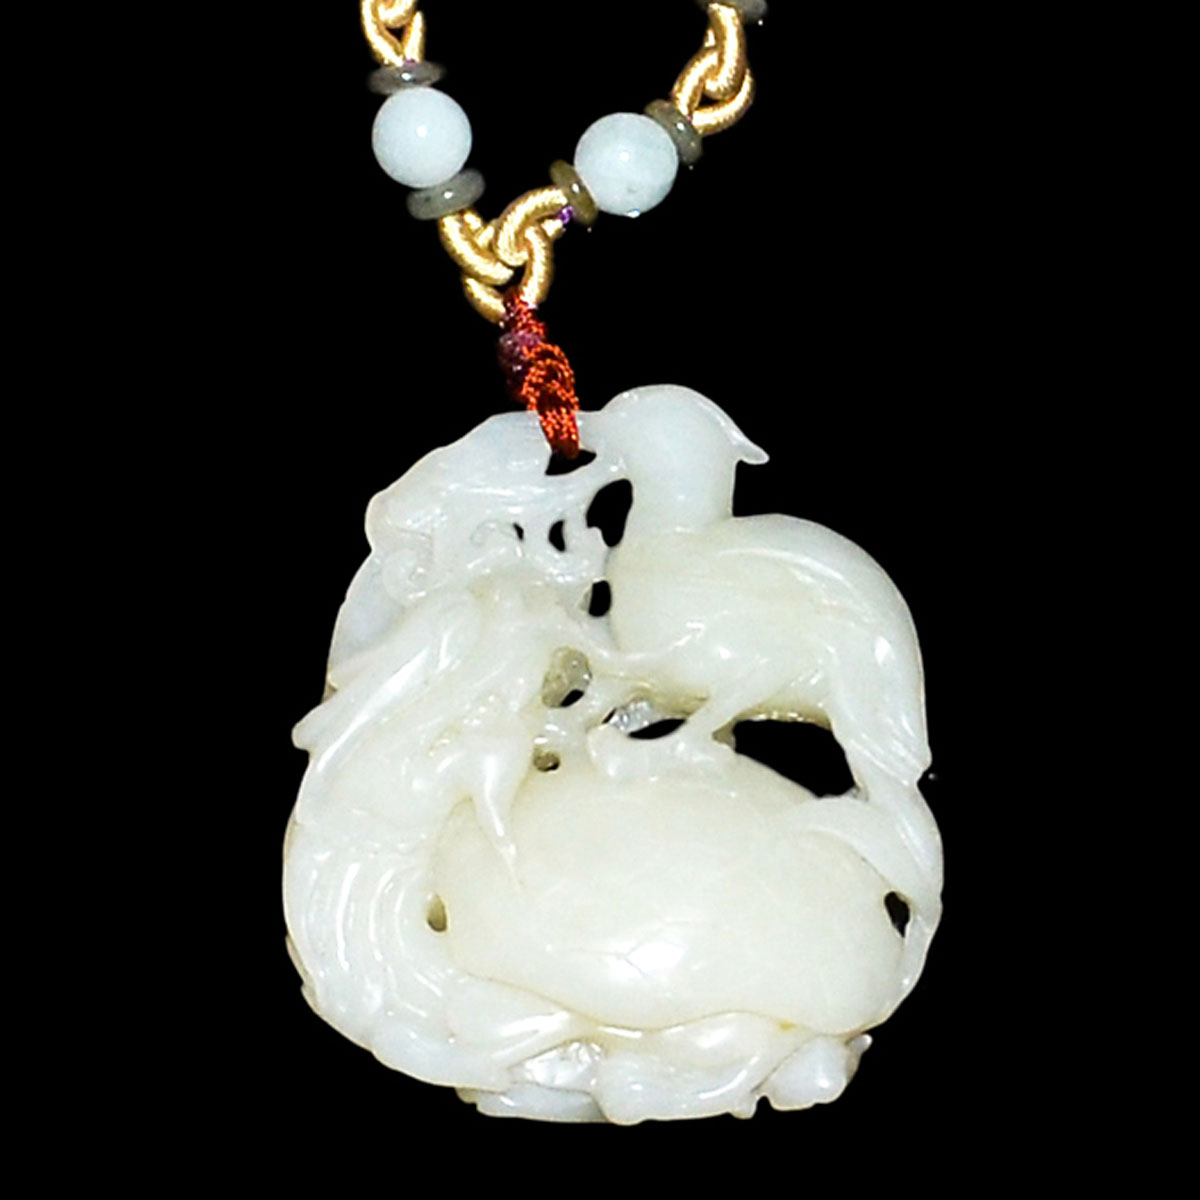 Lot 44 - 和田玉鏤雕龍龜背鳥掛飾連珠鏈 A Well Carved Hetian Jade Pendant and Necklace with Bird atop Dragon-Tortoise.